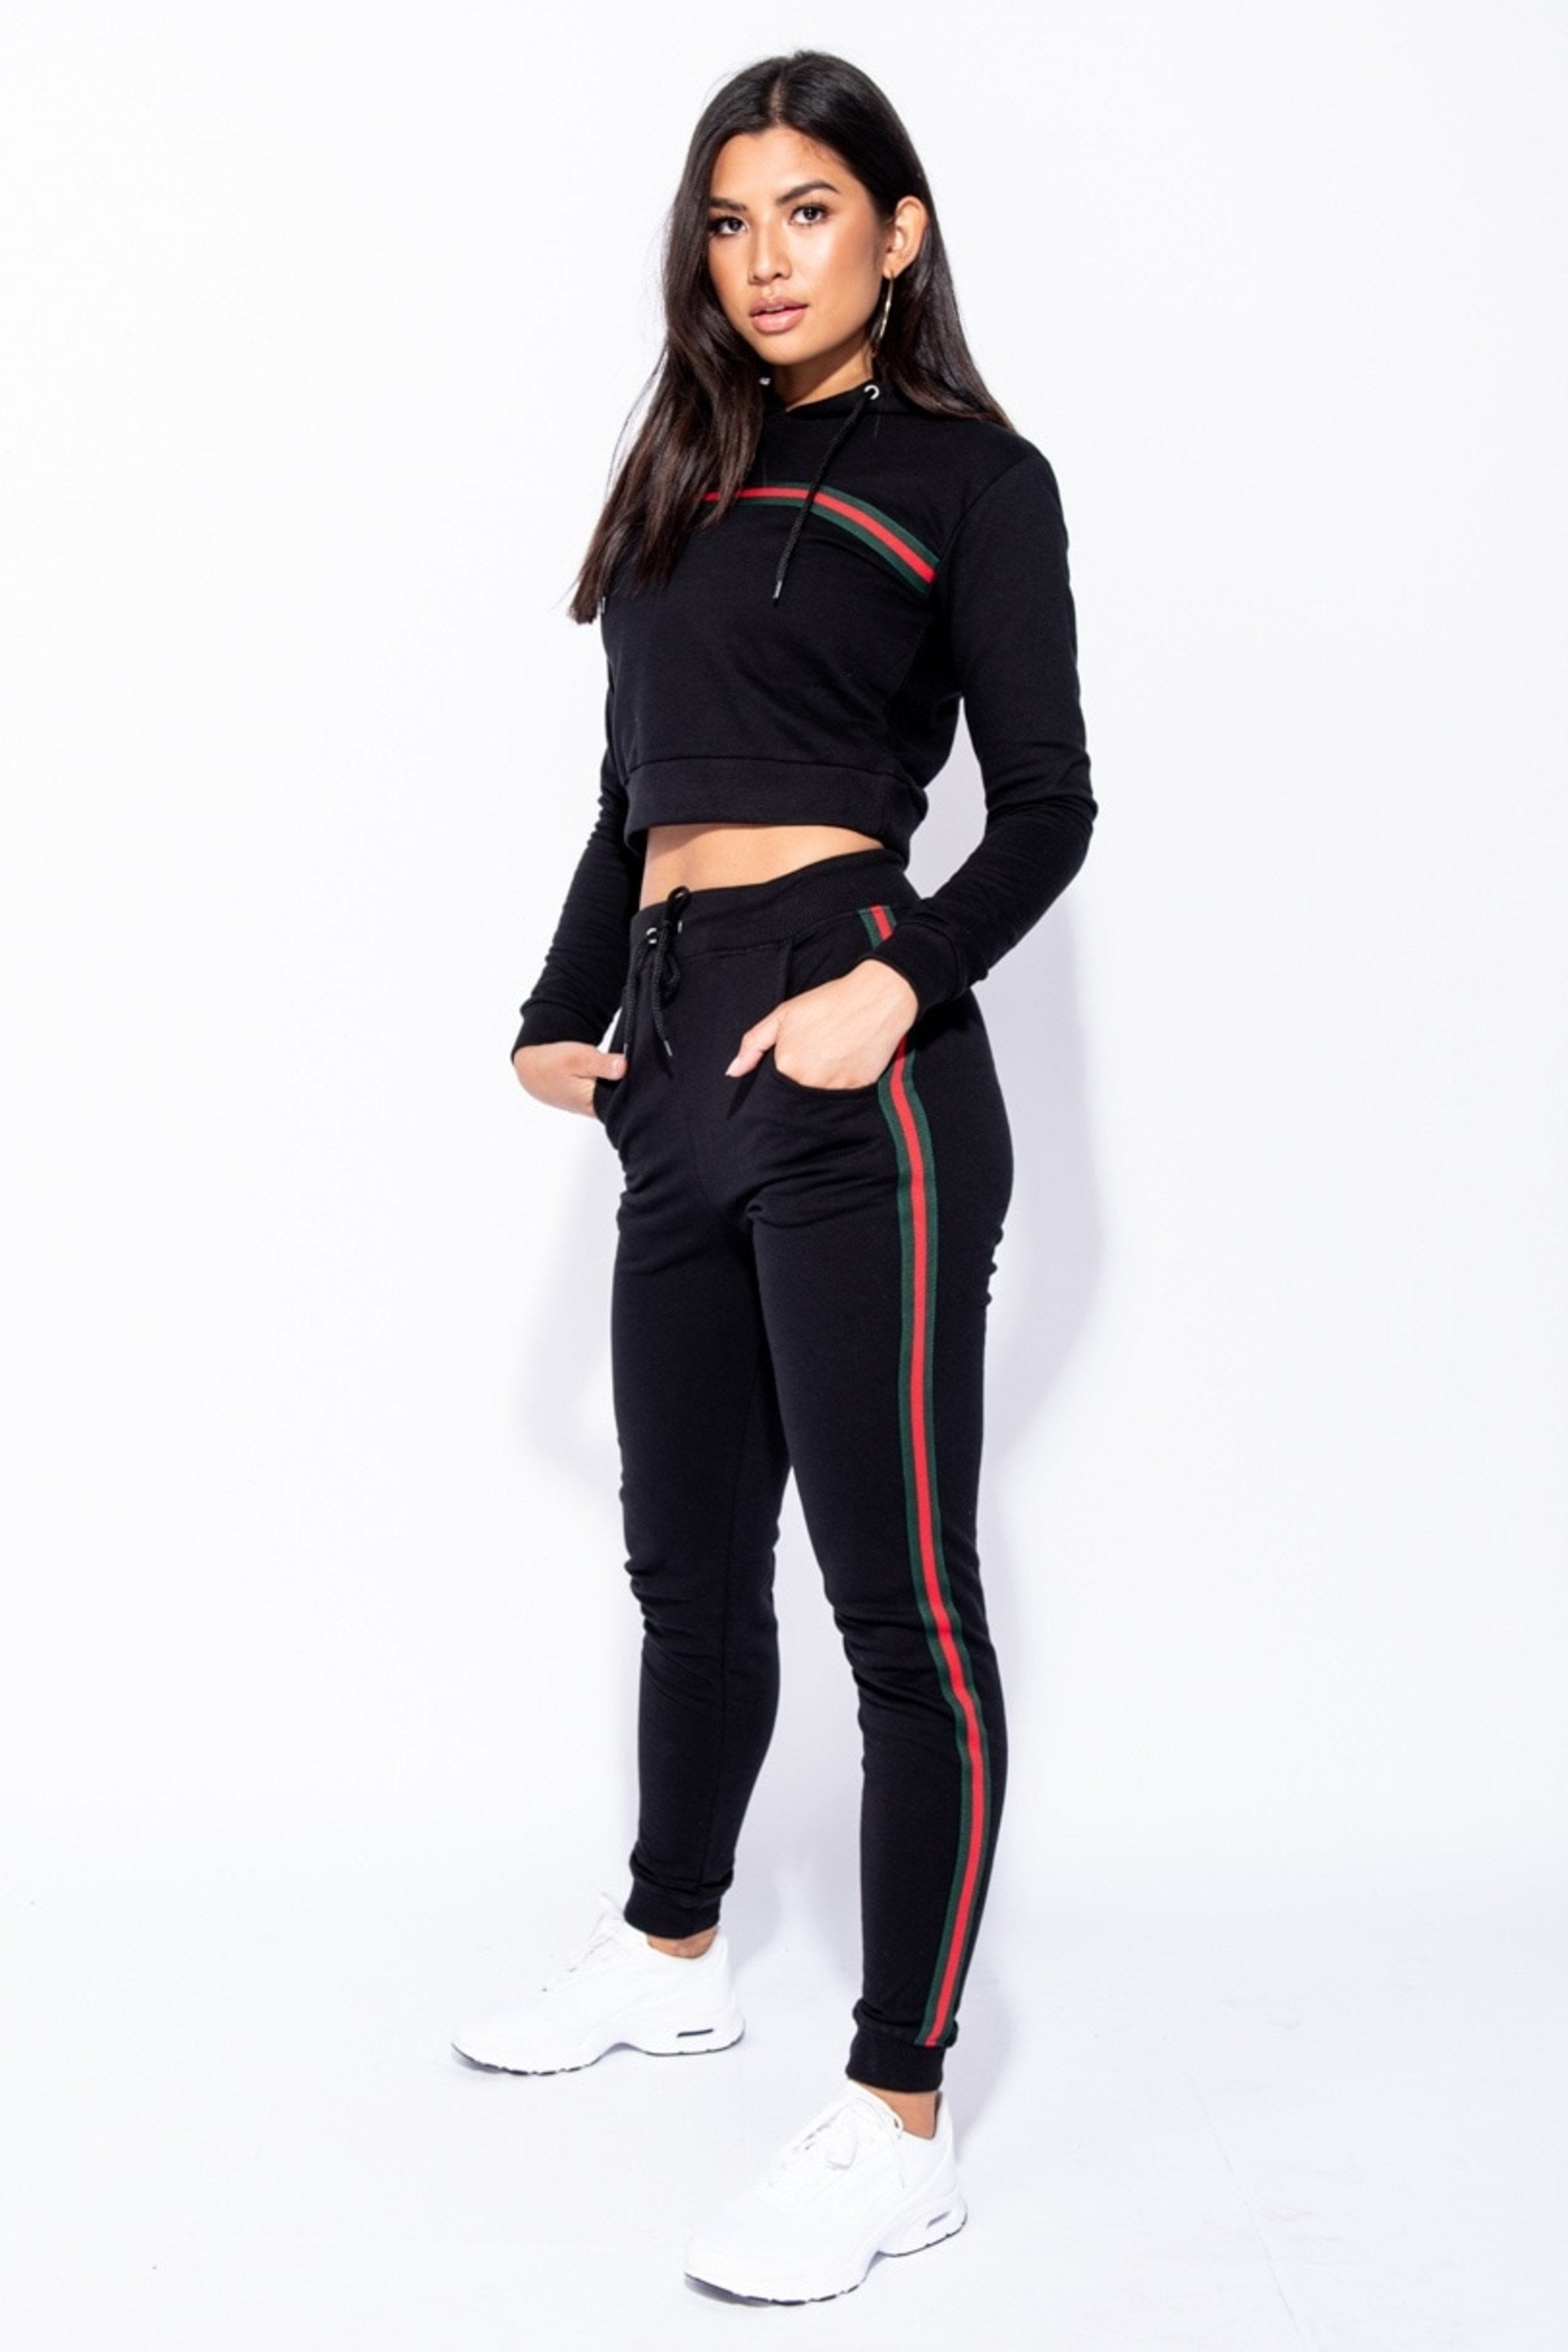 Black Side Stripe Hooded Slim Fit Set, Co-ord, Luna Soul, Luna Soul